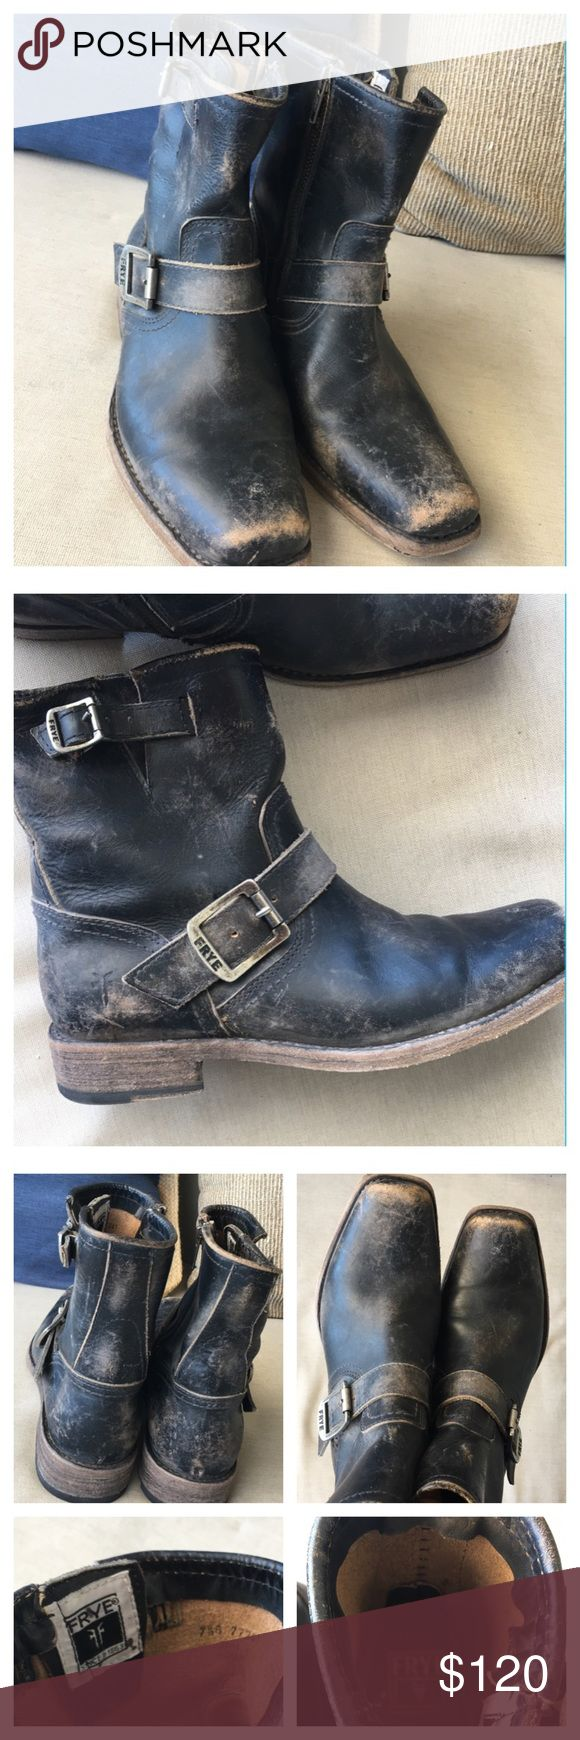 """Frye Smith Engineer Boots These are authentic Frye boots. Though they are used the look of this boot is distressed """"stonewash"""" when purchased new. Its distinctive snub toe is what sets the Smith Engineer boot apart from the original. Tumbled with stones for a distressed look, this boot offers a more rough and tumble take on our iconic tribute to the great American working man. FEATURES - Leather lined - Leather outsole with rubber insert - 8 1/2"""" shaft height - 14"""" shaft circumference - 1…"""